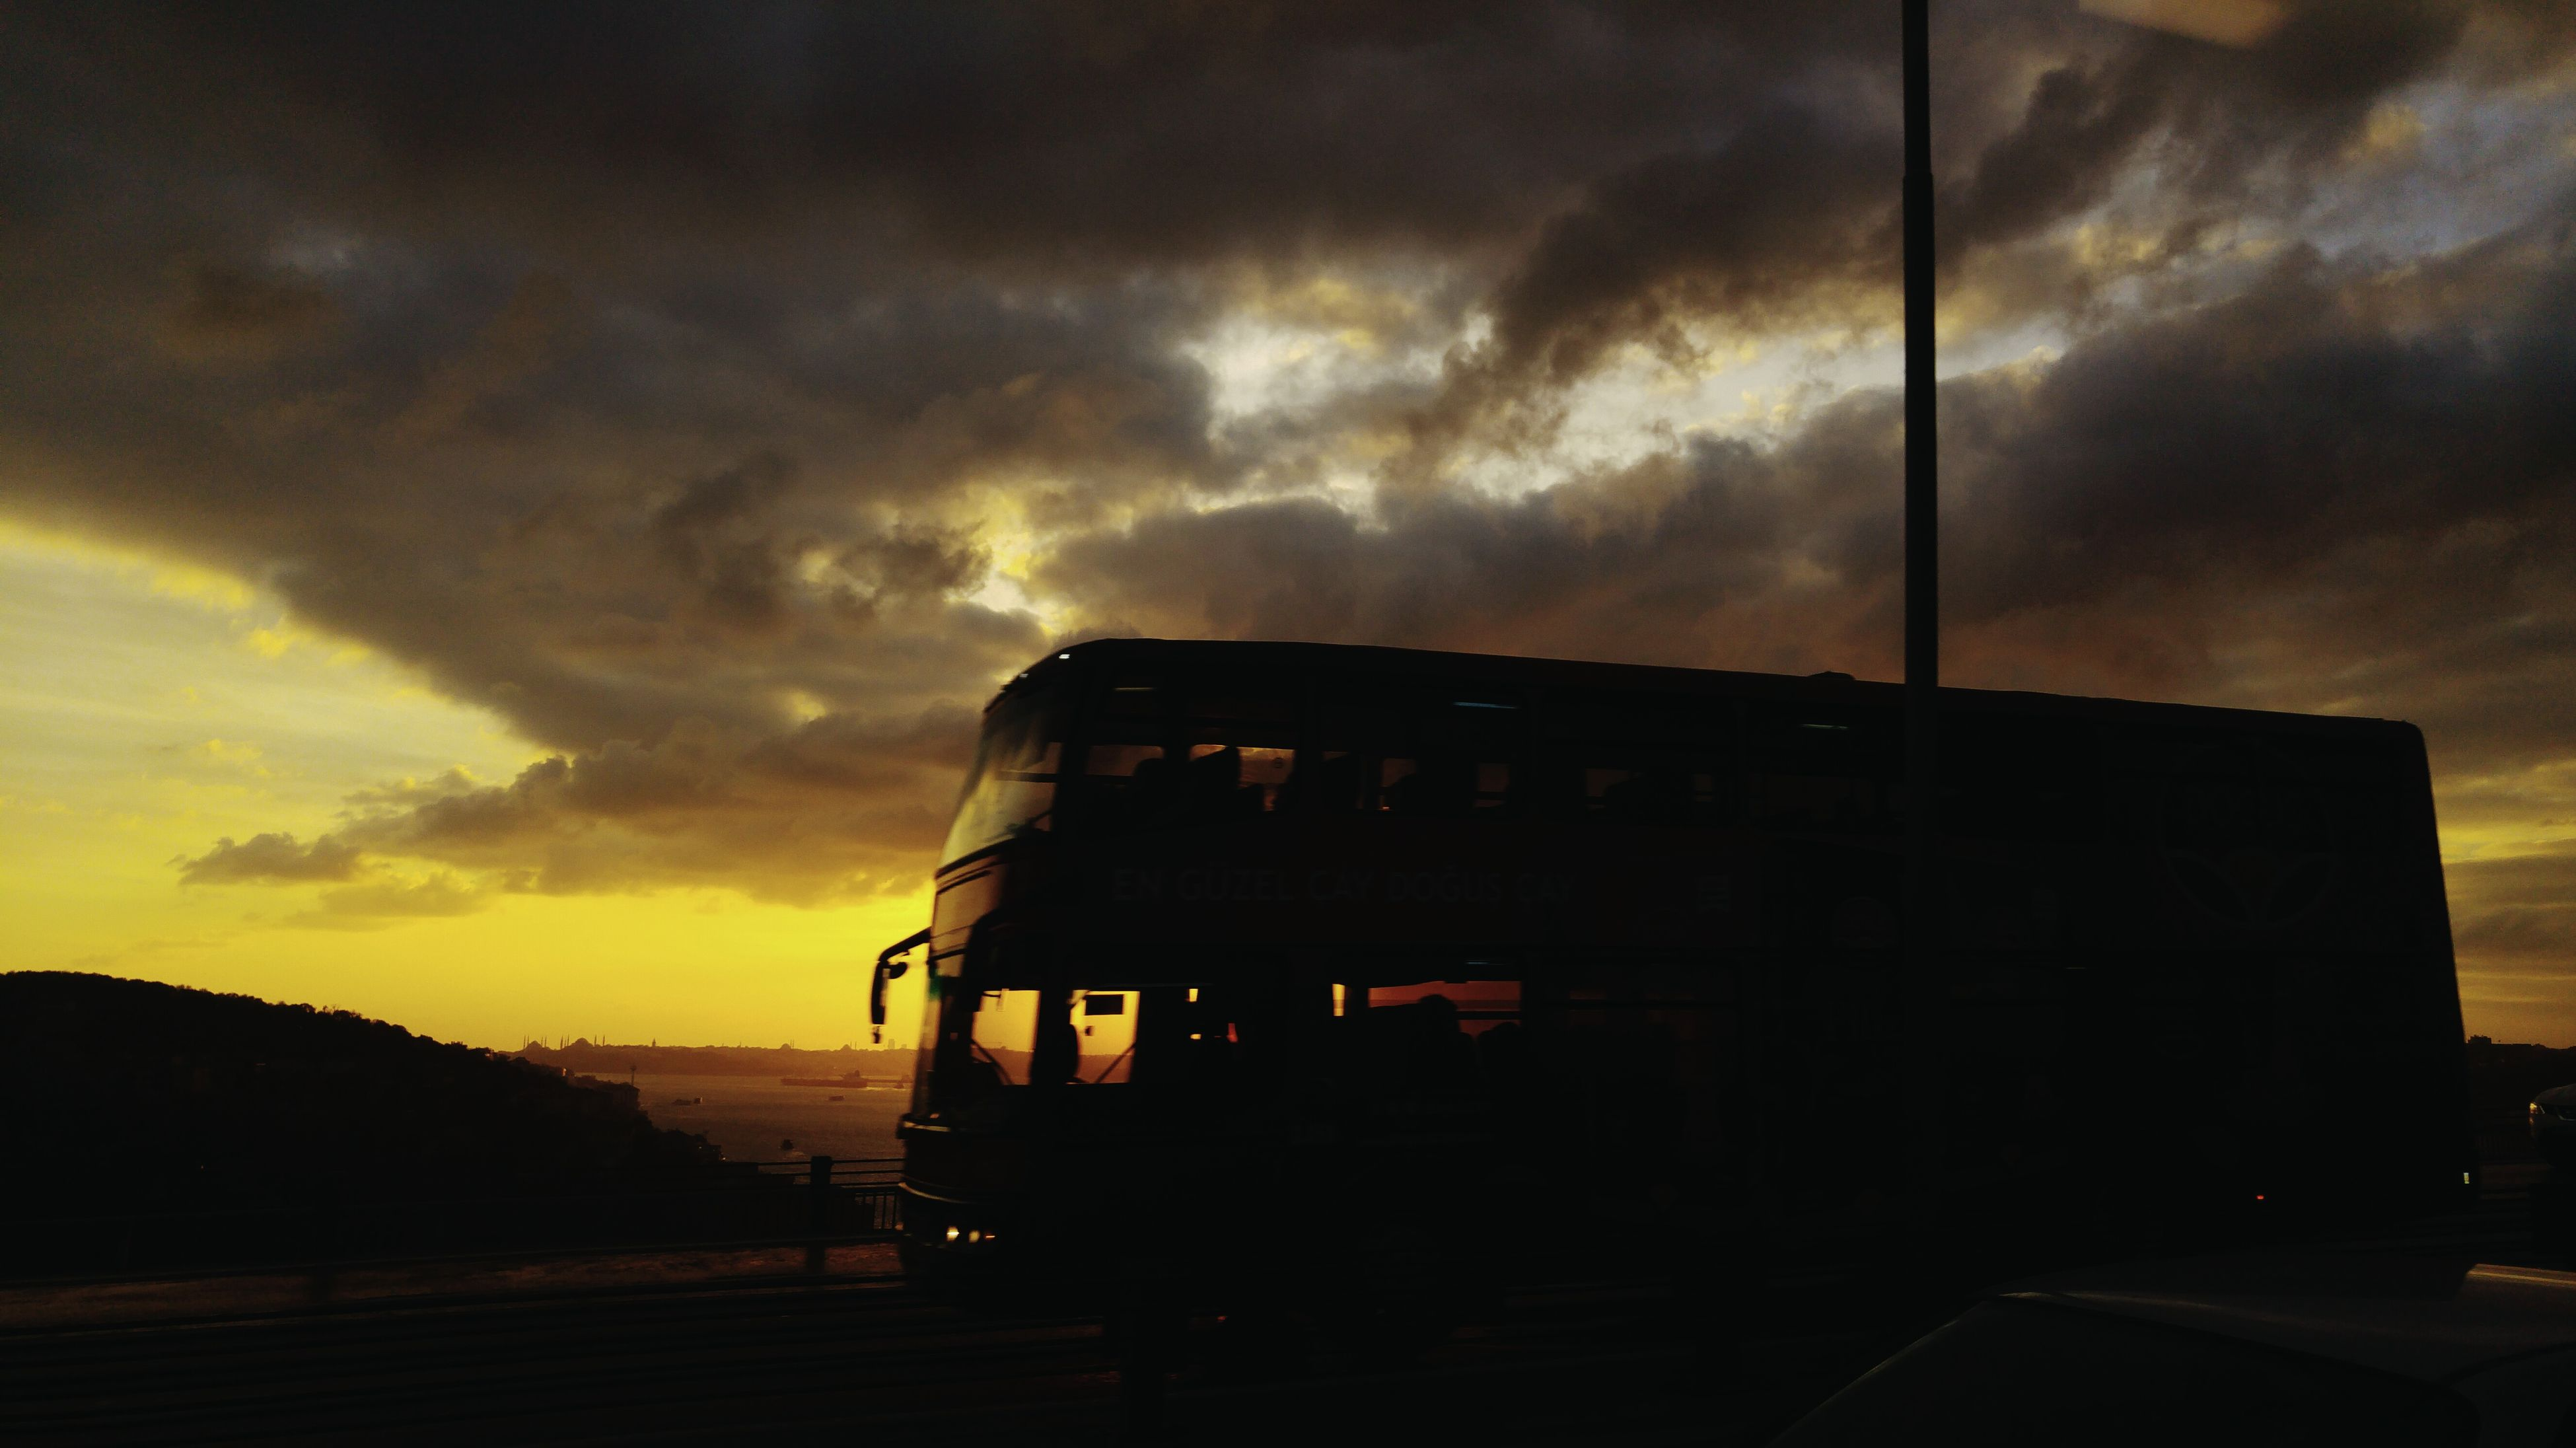 sky, cloud - sky, sunset, transportation, mode of transport, dramatic sky, outdoors, no people, nature, beauty in nature, night